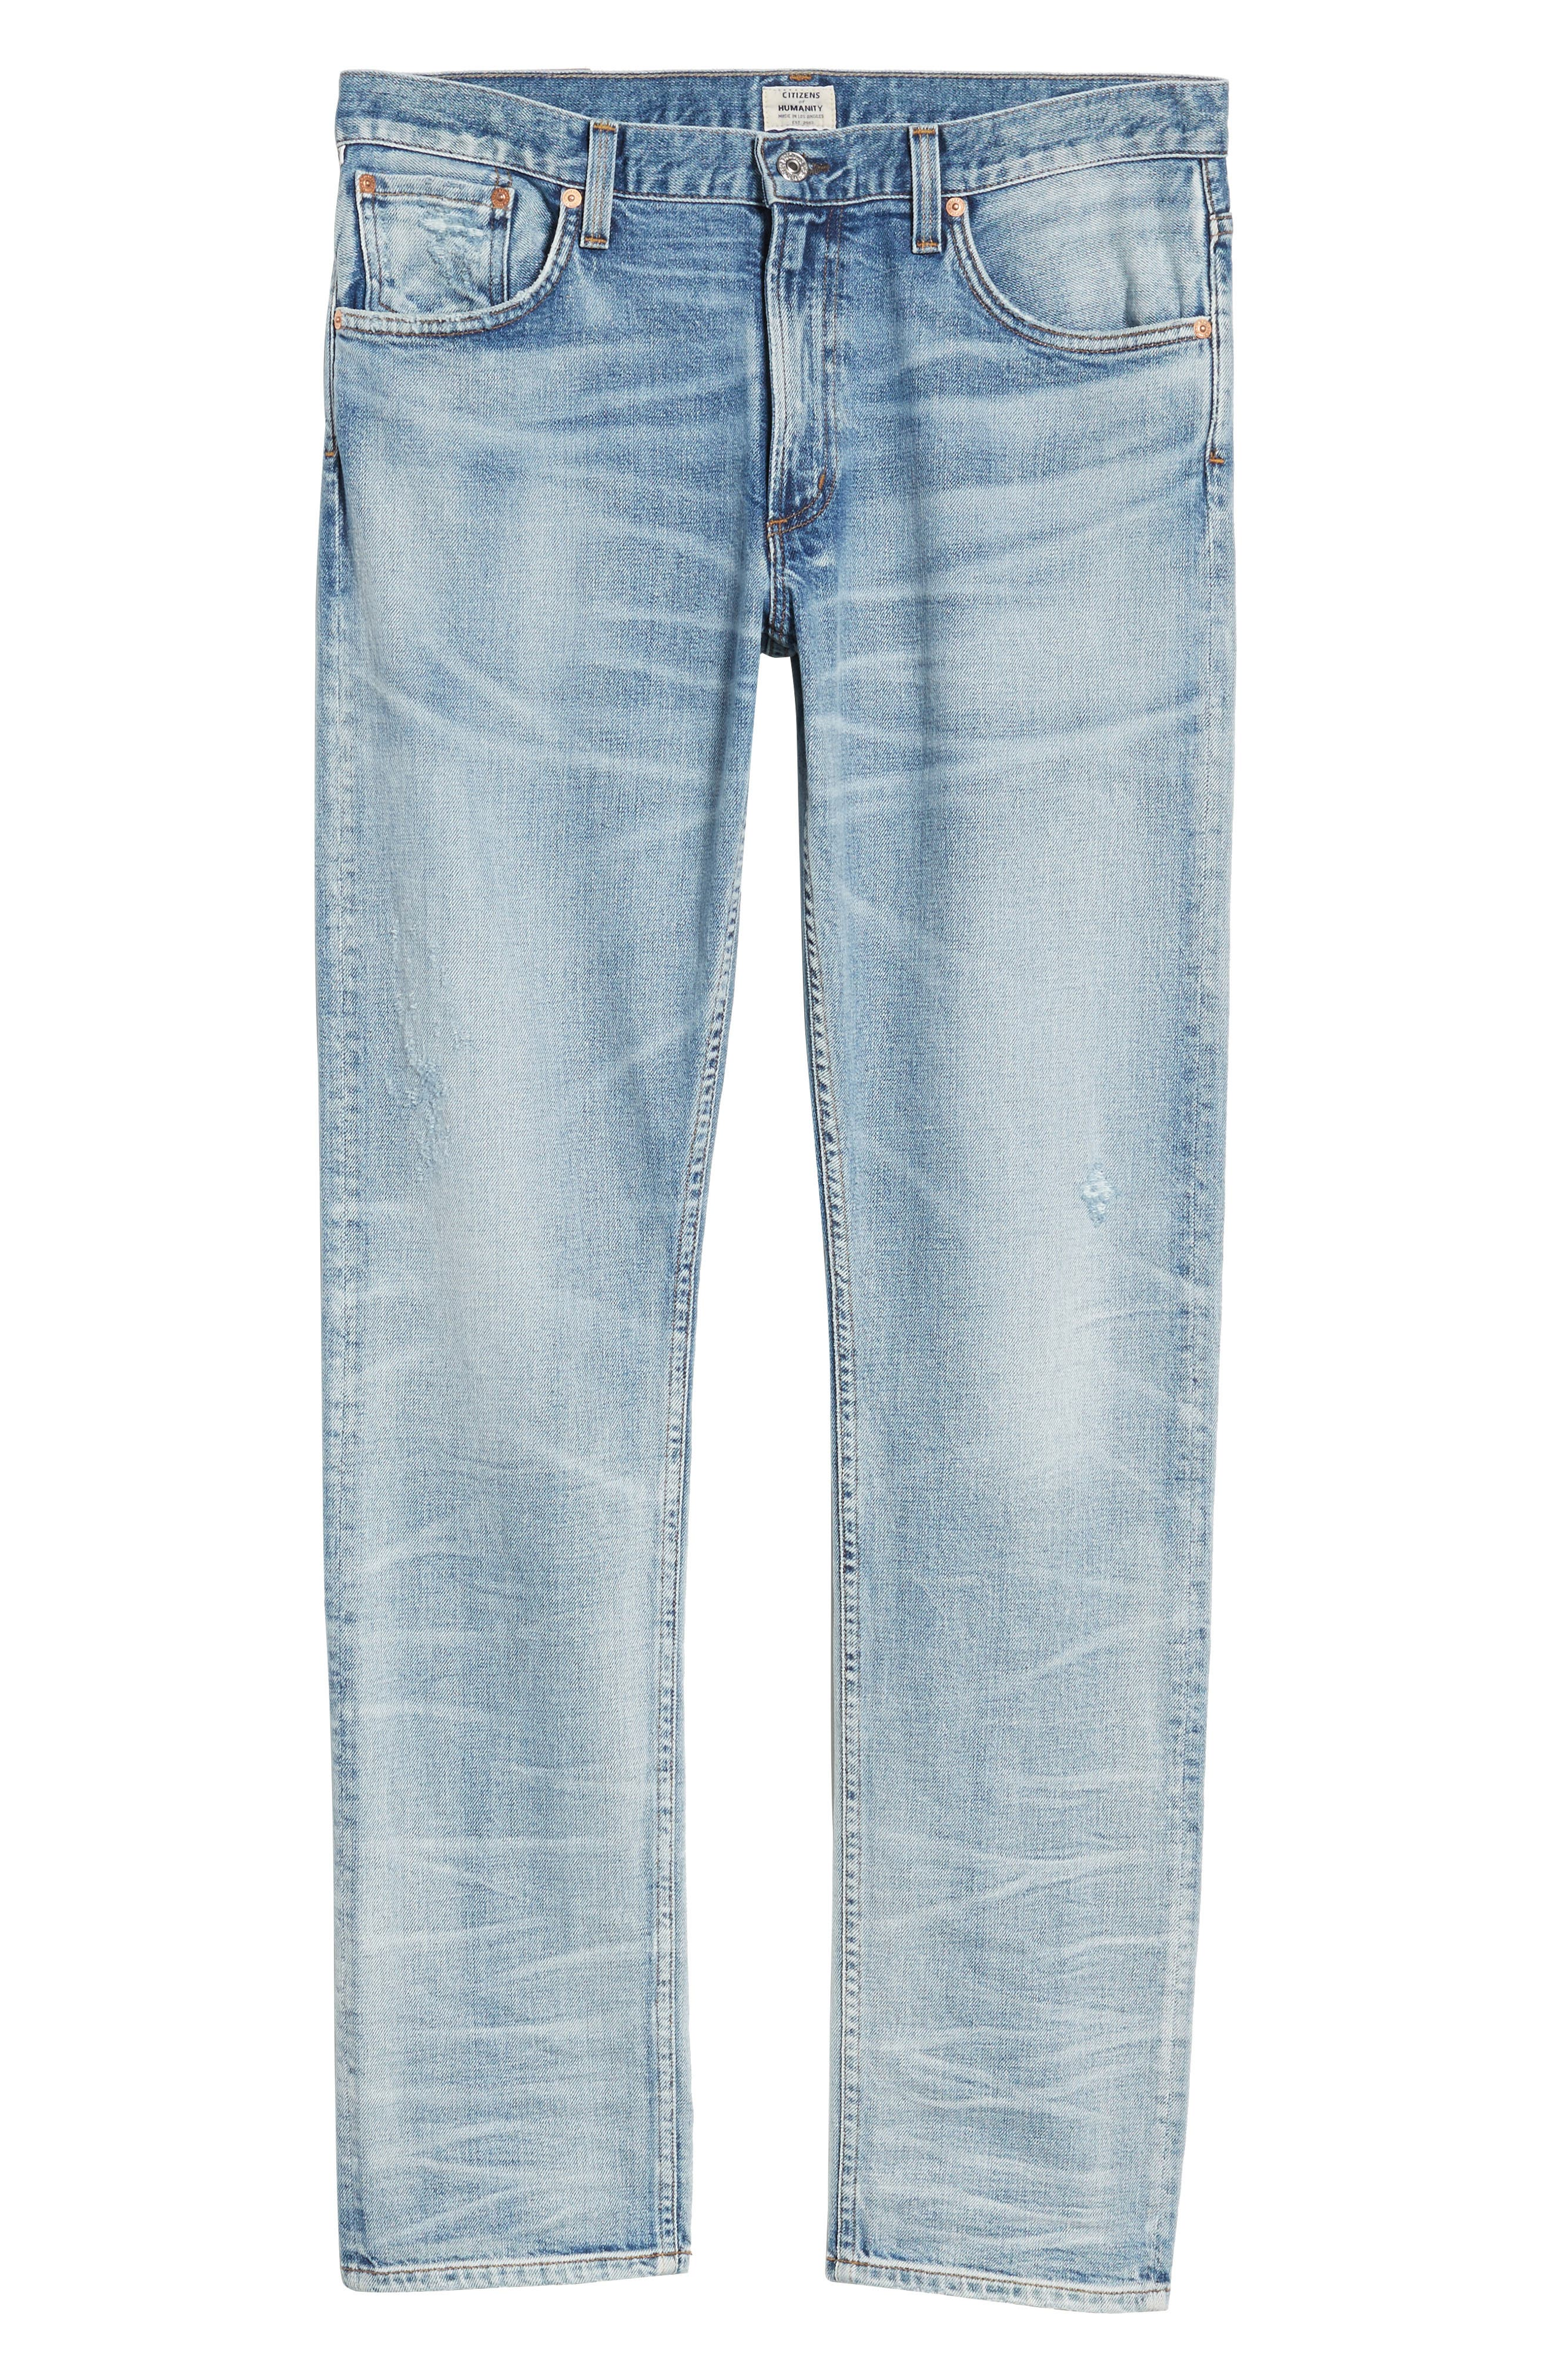 CITIZENS OF HUMANITY,                             Bowery Slim Fit Jeans,                             Alternate thumbnail 6, color,                             471